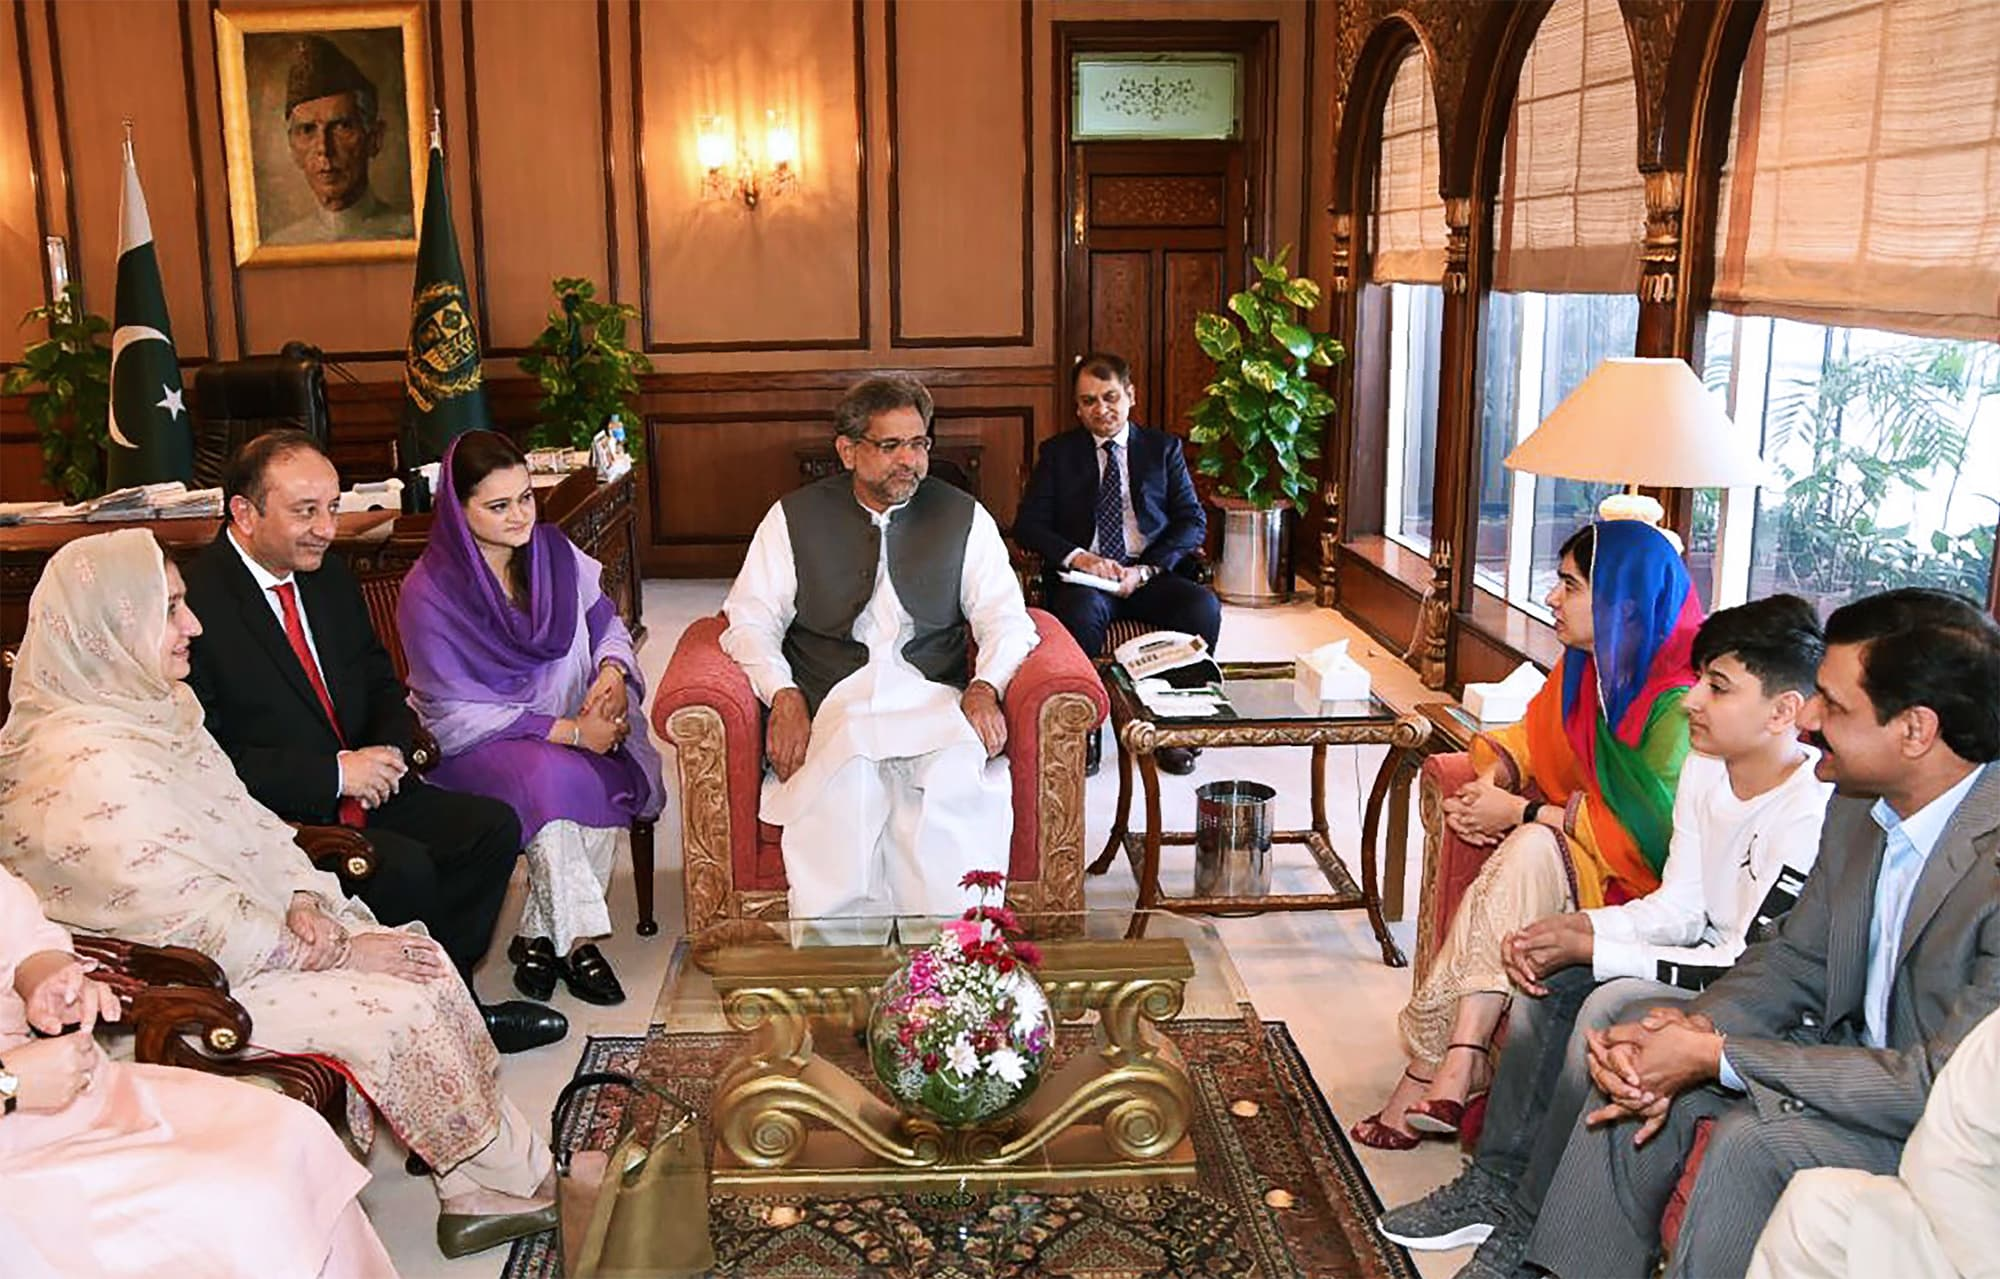 This handout photograph released by the Press Information Department (PID) on March 29, 2018, shows Prime Minister Shahid Khaqan Abbasi (C) meeting with Malala Yousafza (3R) and her family at Prime Minister Office during her visit to Islamabad. ─ AFP